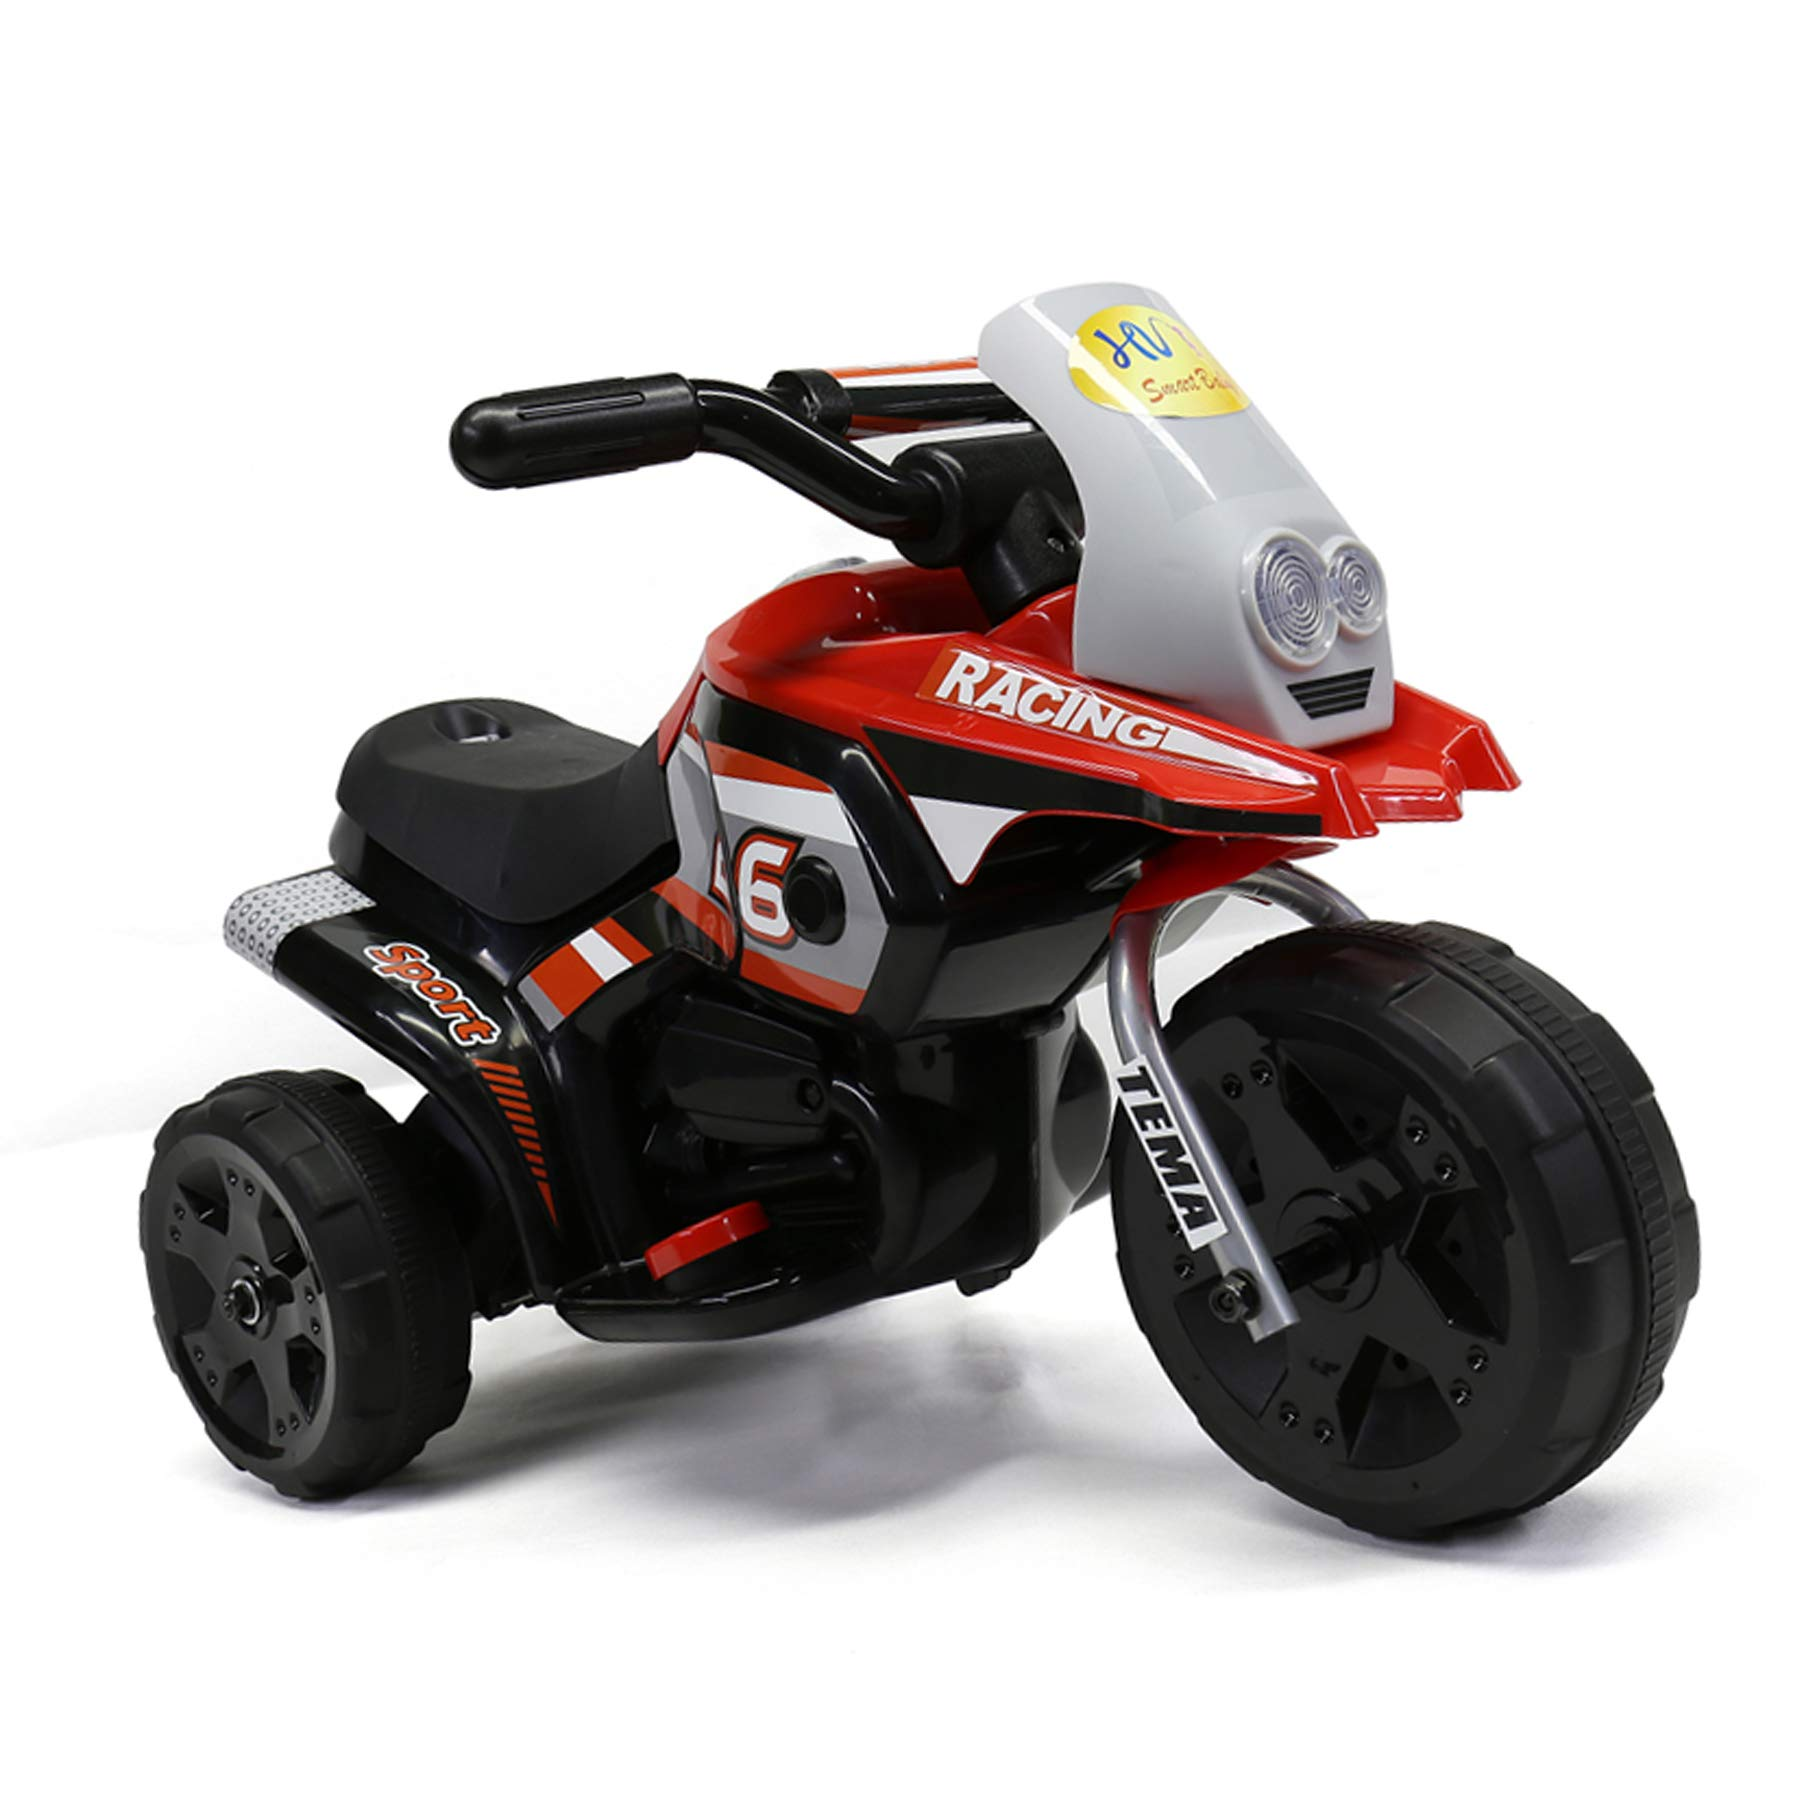 MIGOTOYS GO MIGO Racing Motorcycle Ride on Car for Kids1-3 Year Old, Red